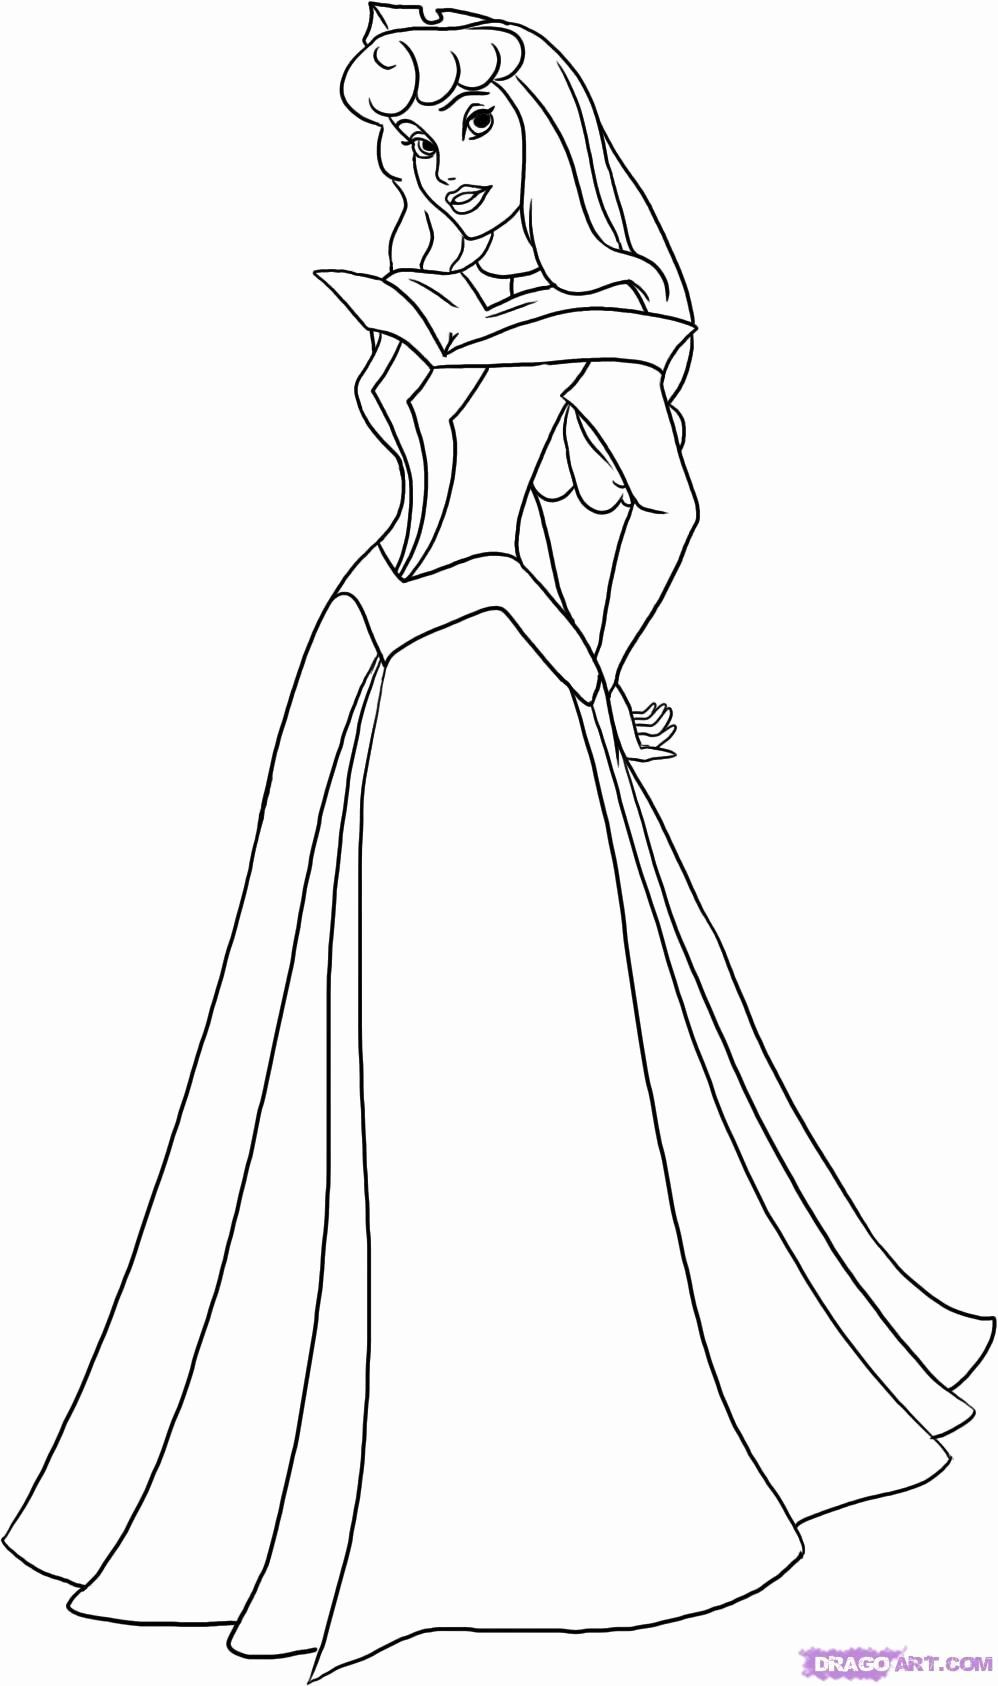 Princess Aurora Coloring Page Luxury How To Draw Sleeping Beauty Princess In 2020 Disney Princess Coloring Pages Sleeping Beauty Coloring Pages Princess Coloring Pages